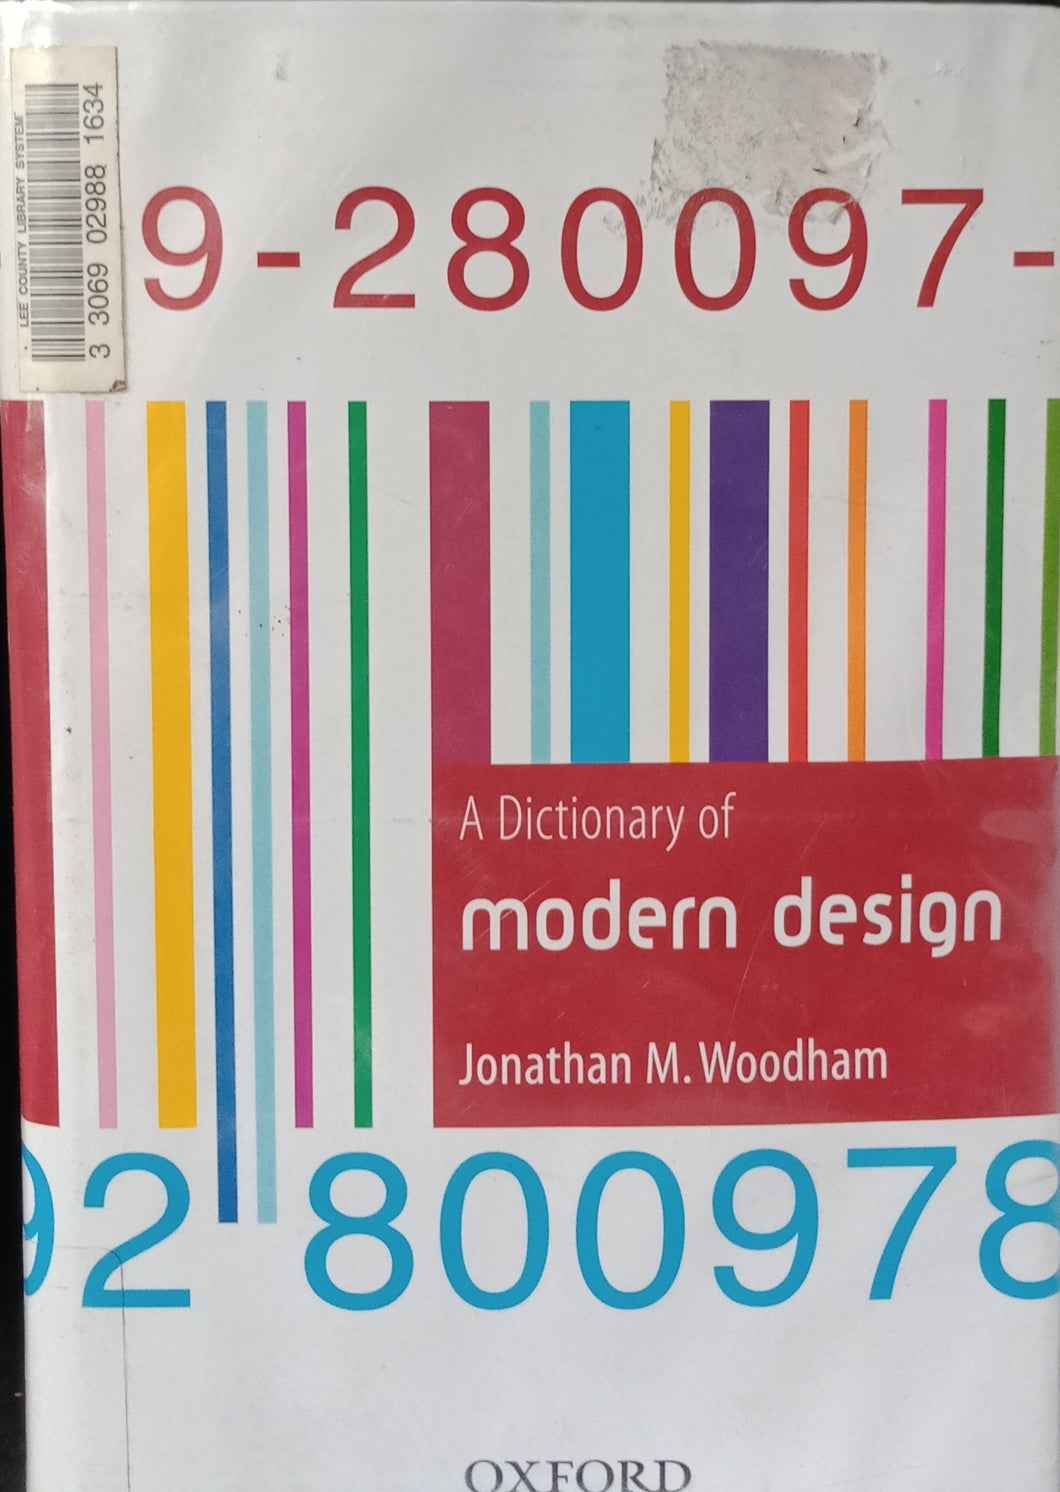 A Dictionary of Modern Design by Jonathan Woodham